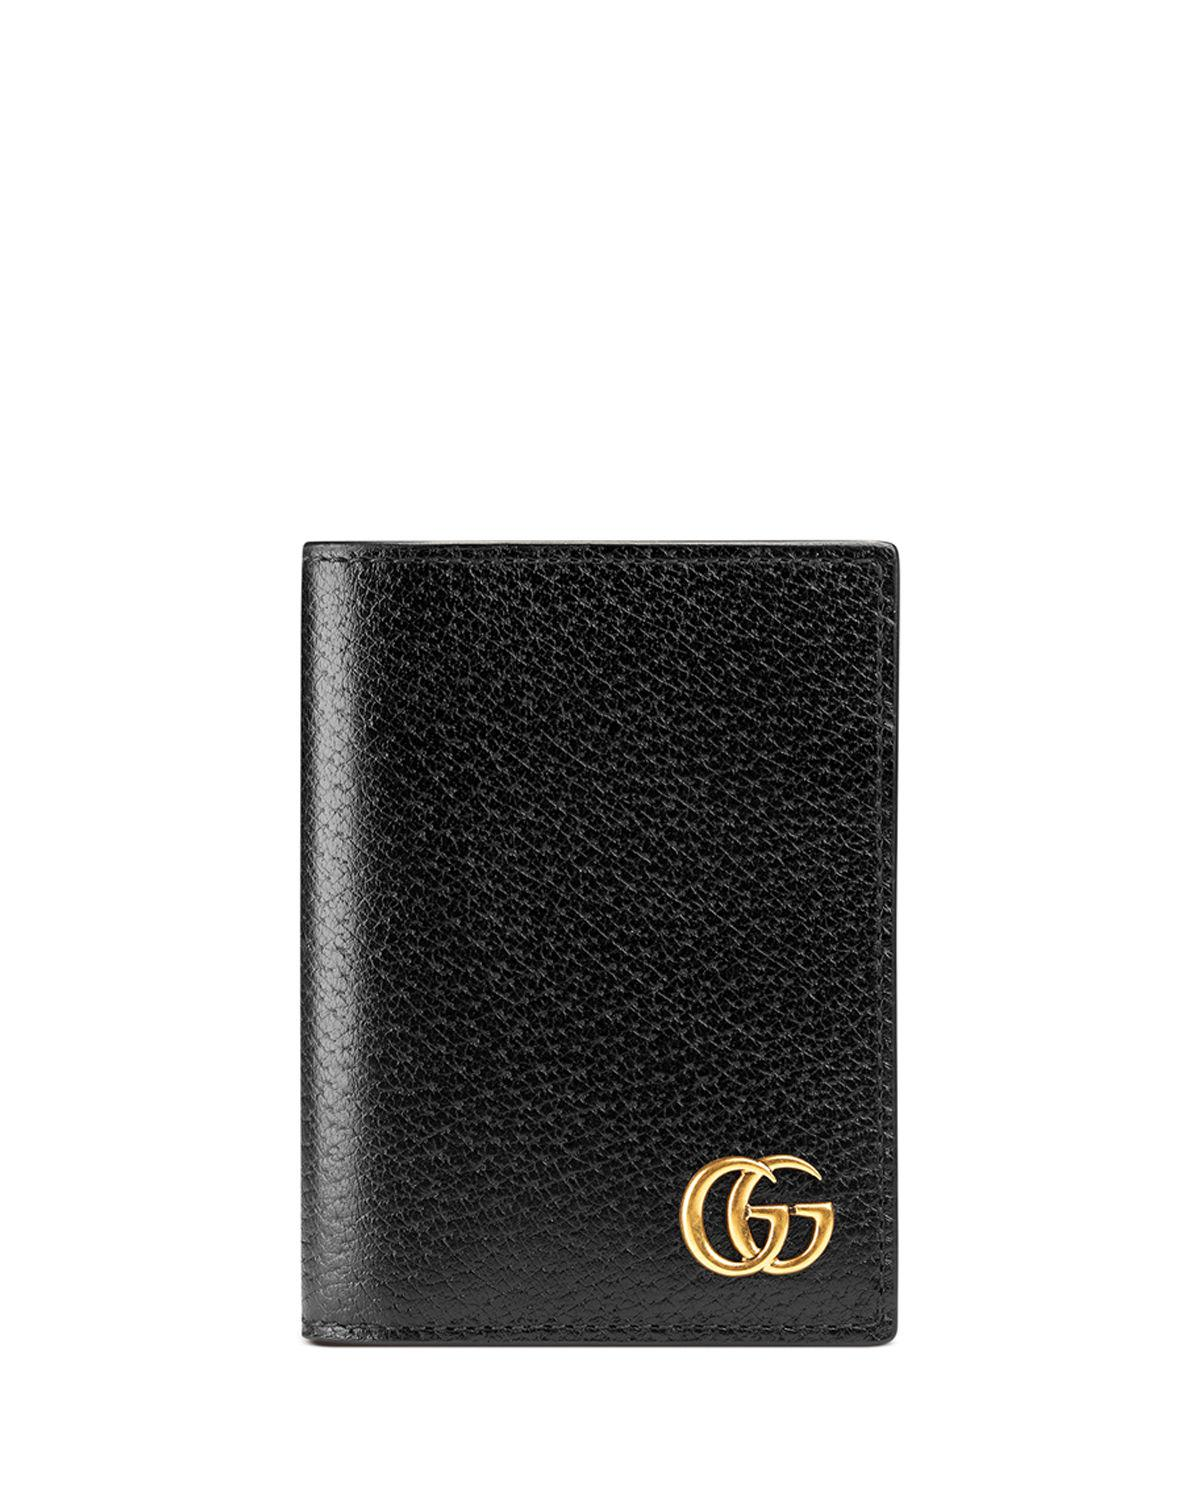 a3a863eb8243d Lyst - Gucci GG Marmont Leather Fold-over Card Case in Brown for Men